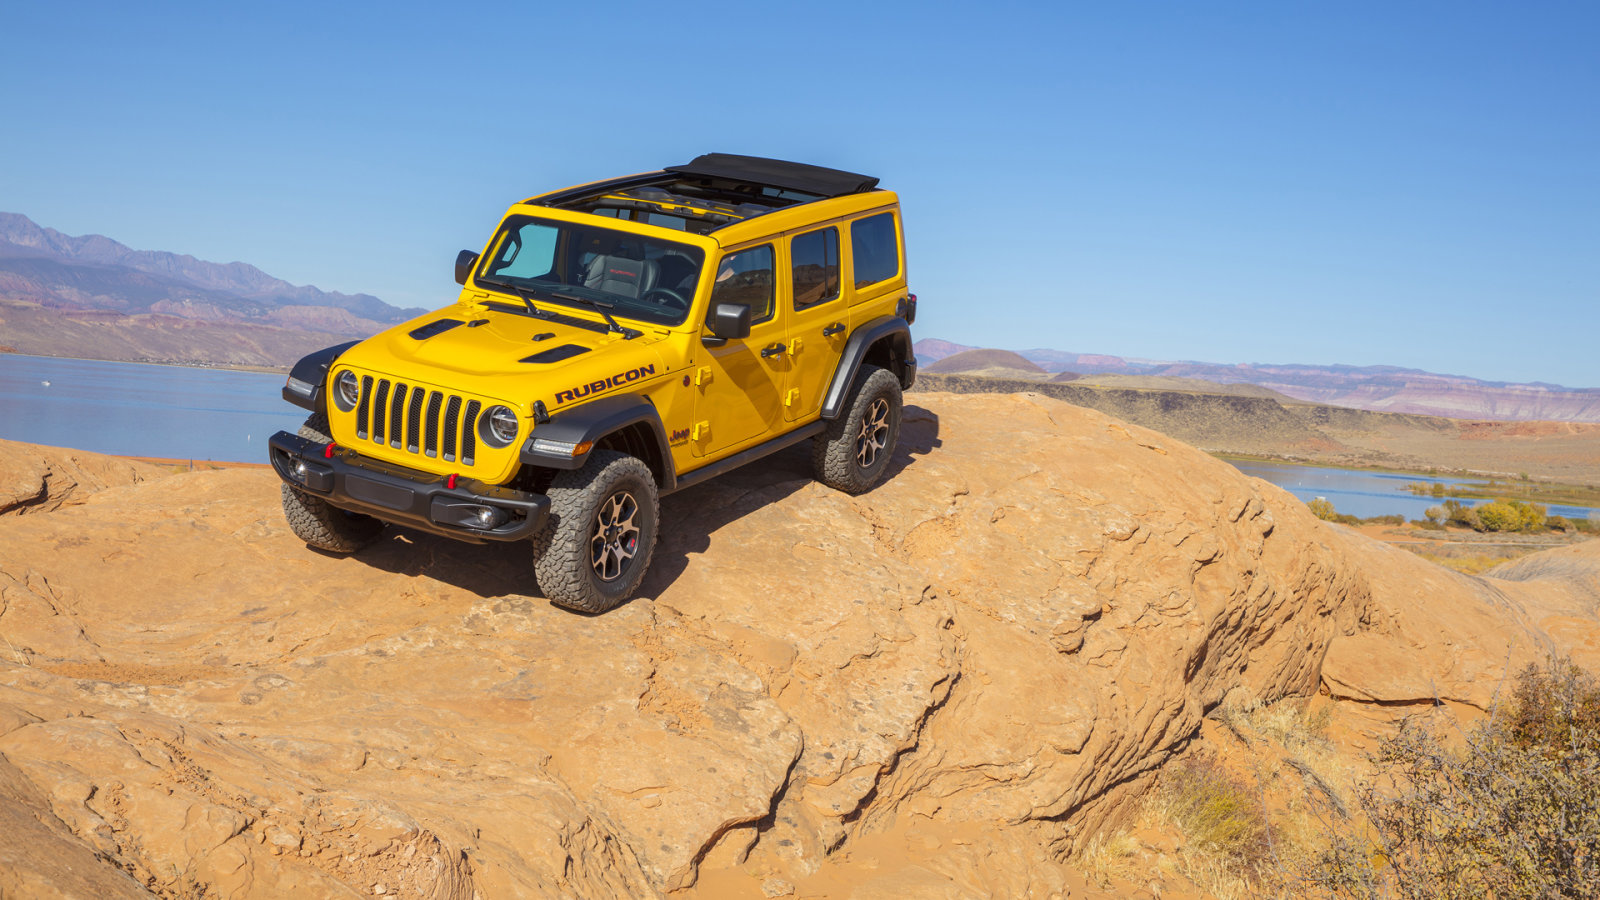 2020 Jeep Wrangler Unlimited EcoDiesel First Drive Review | Fuel economy, range, off-roading